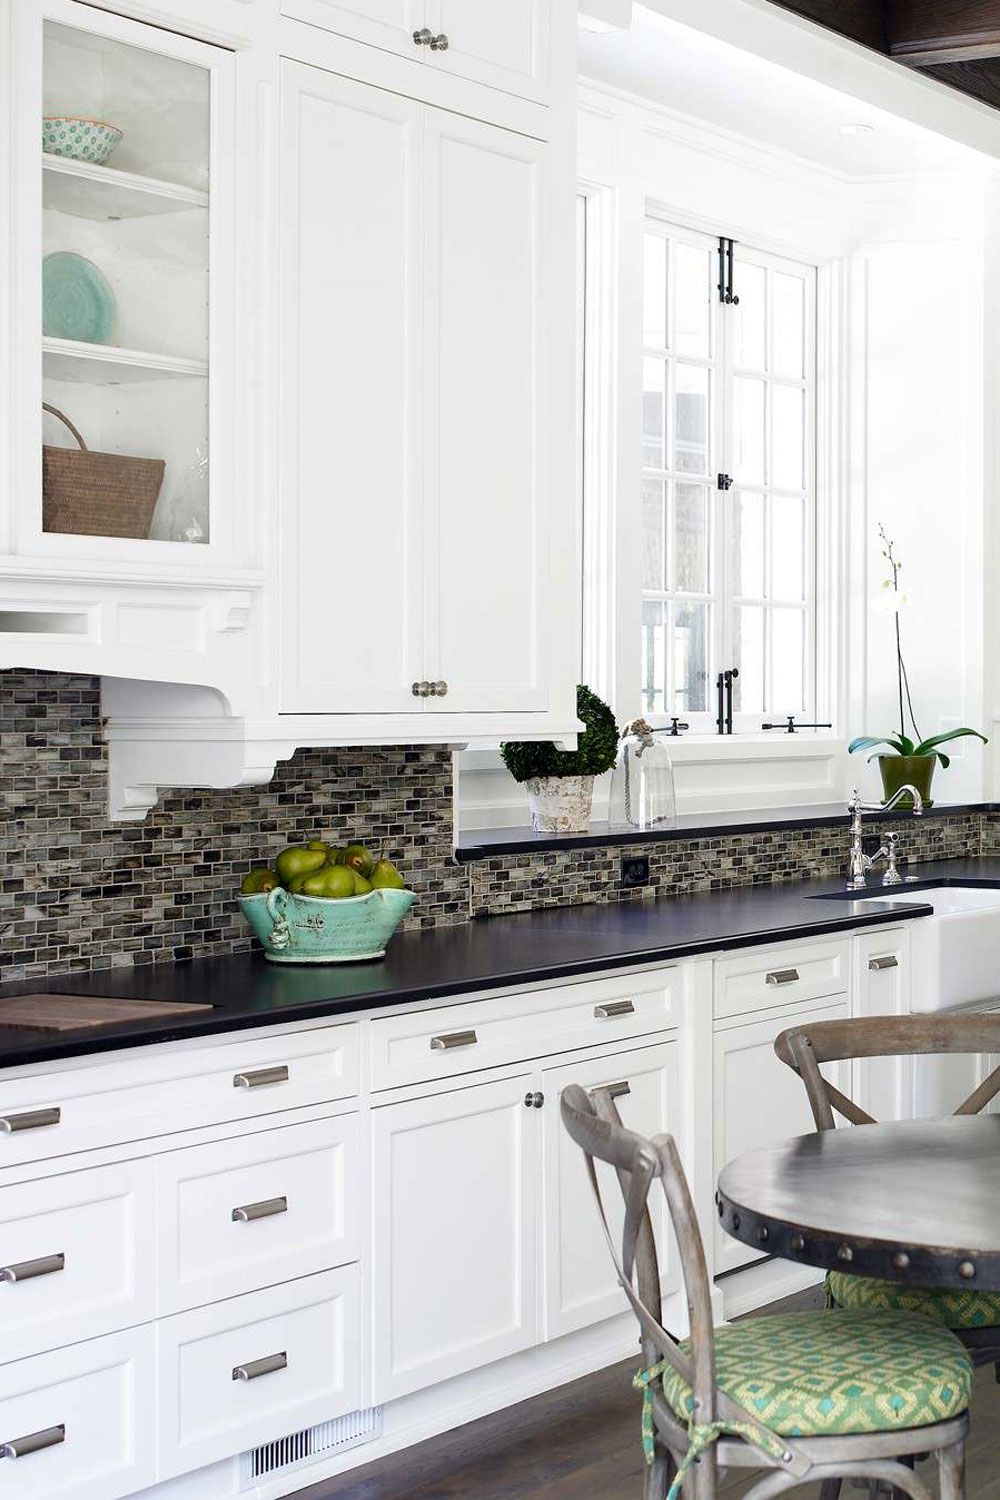 50 black countertop backsplash ideas tile designs tips advice countertop backsplash on kitchen remodel dark countertops id=94287